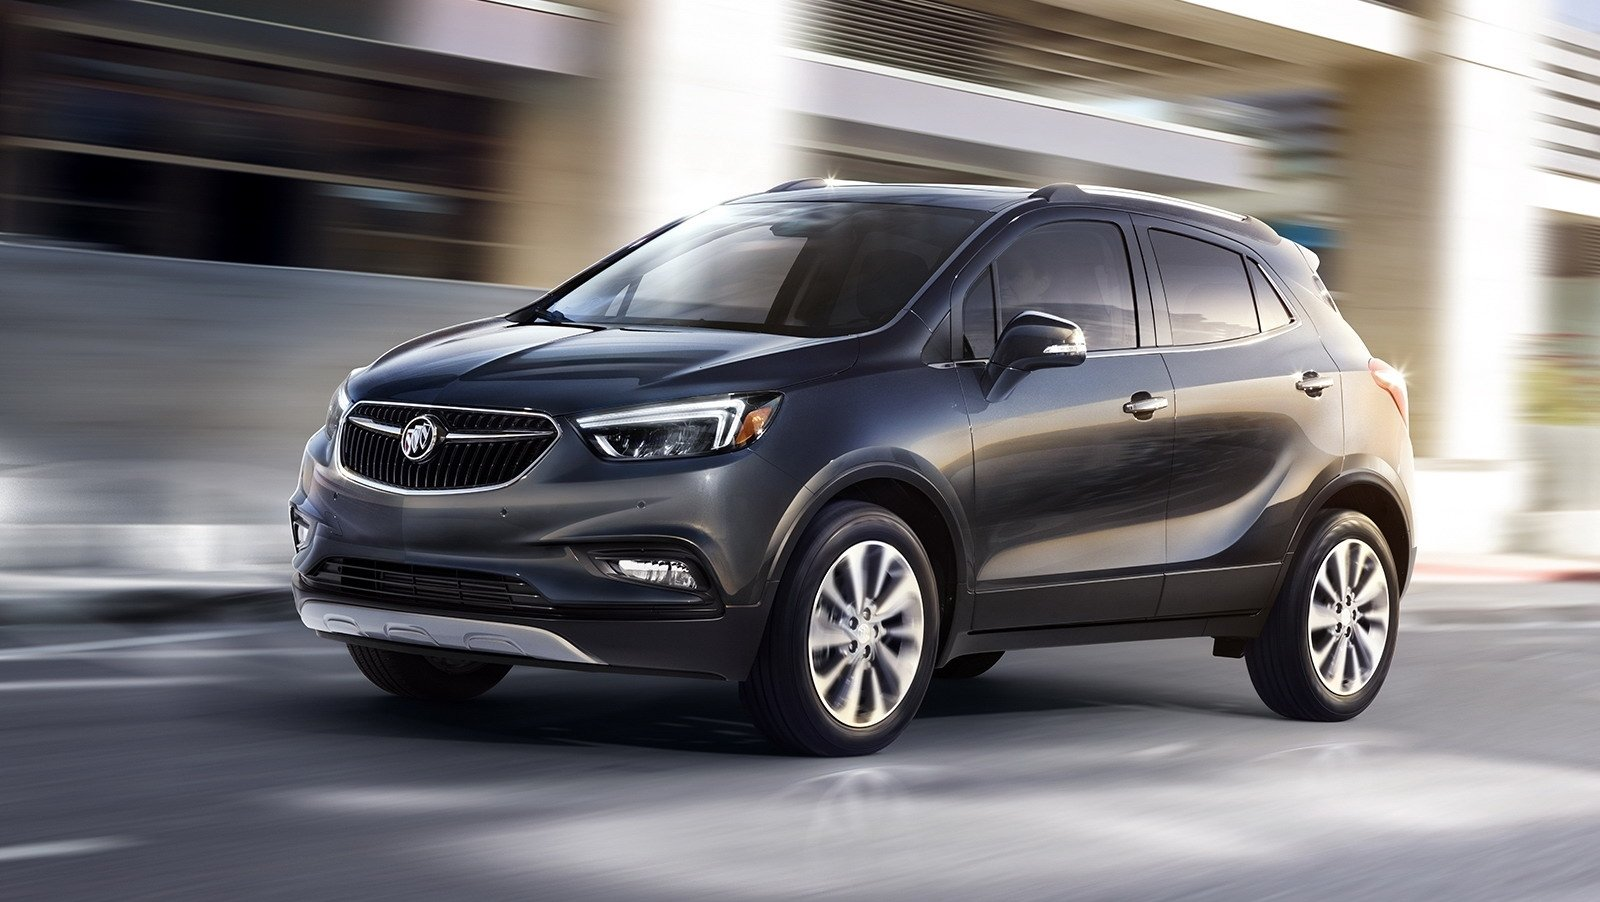 2017 buick encore picture 670210 car review top speed. Black Bedroom Furniture Sets. Home Design Ideas